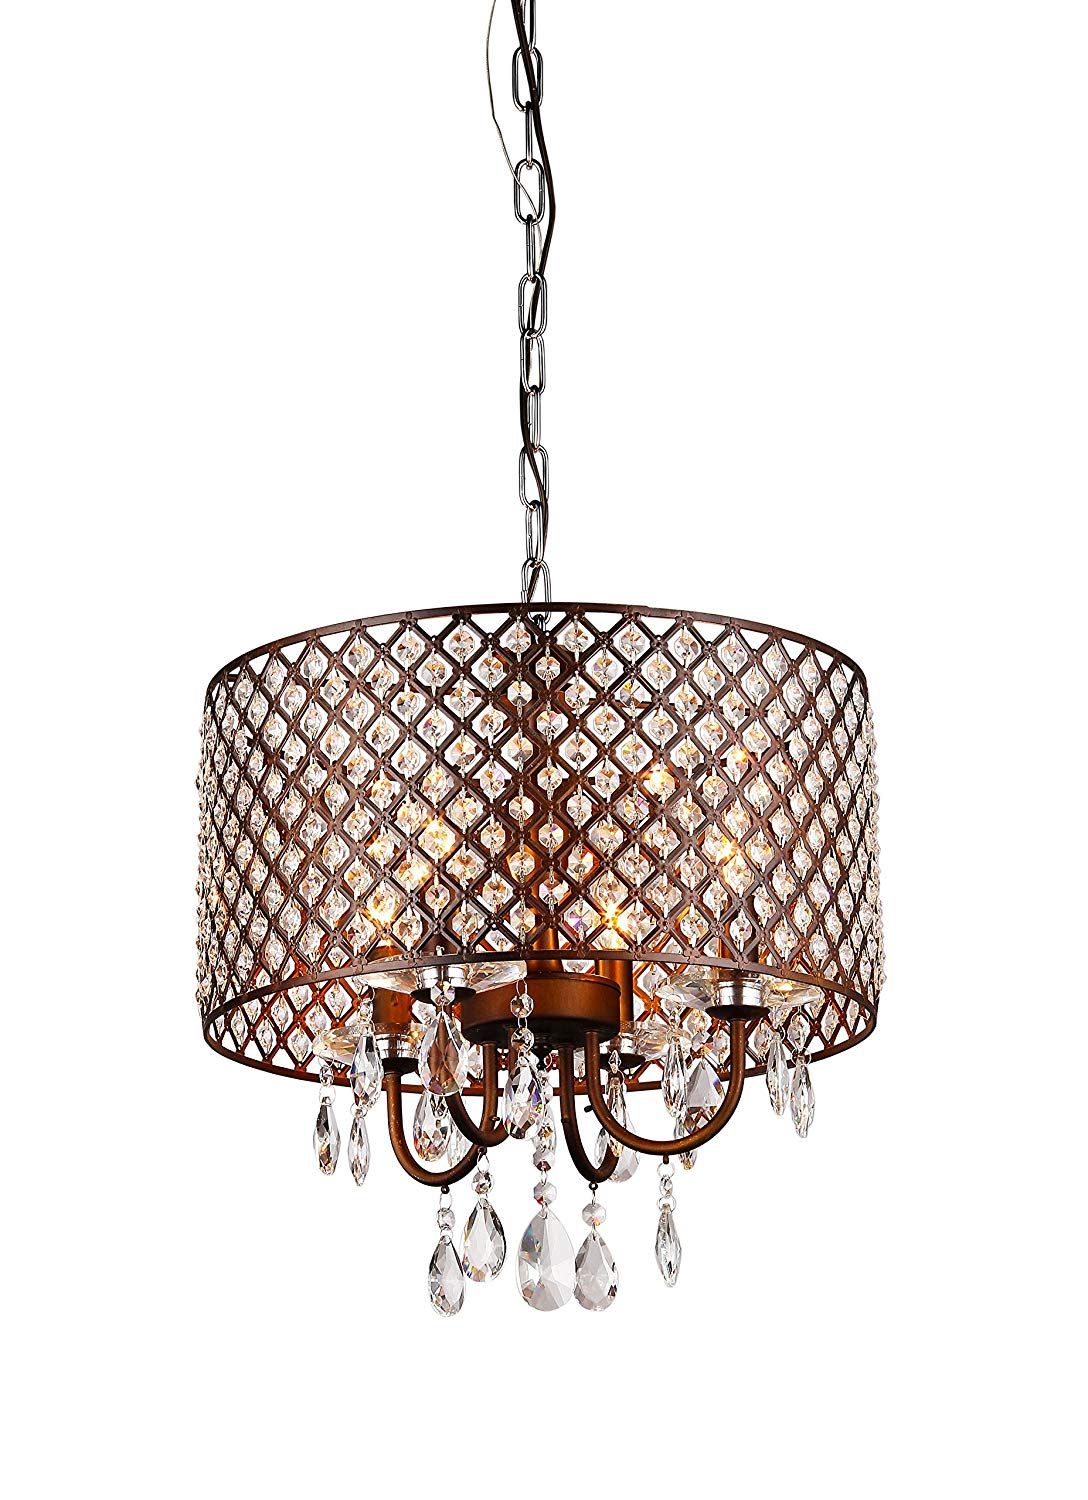 Armande 4 Light Lantern Drum Pendants Throughout Best And Newest Whse Of Tiffany Rl8064 Alexia Antique Bronze Chandelier (View 6 of 25)